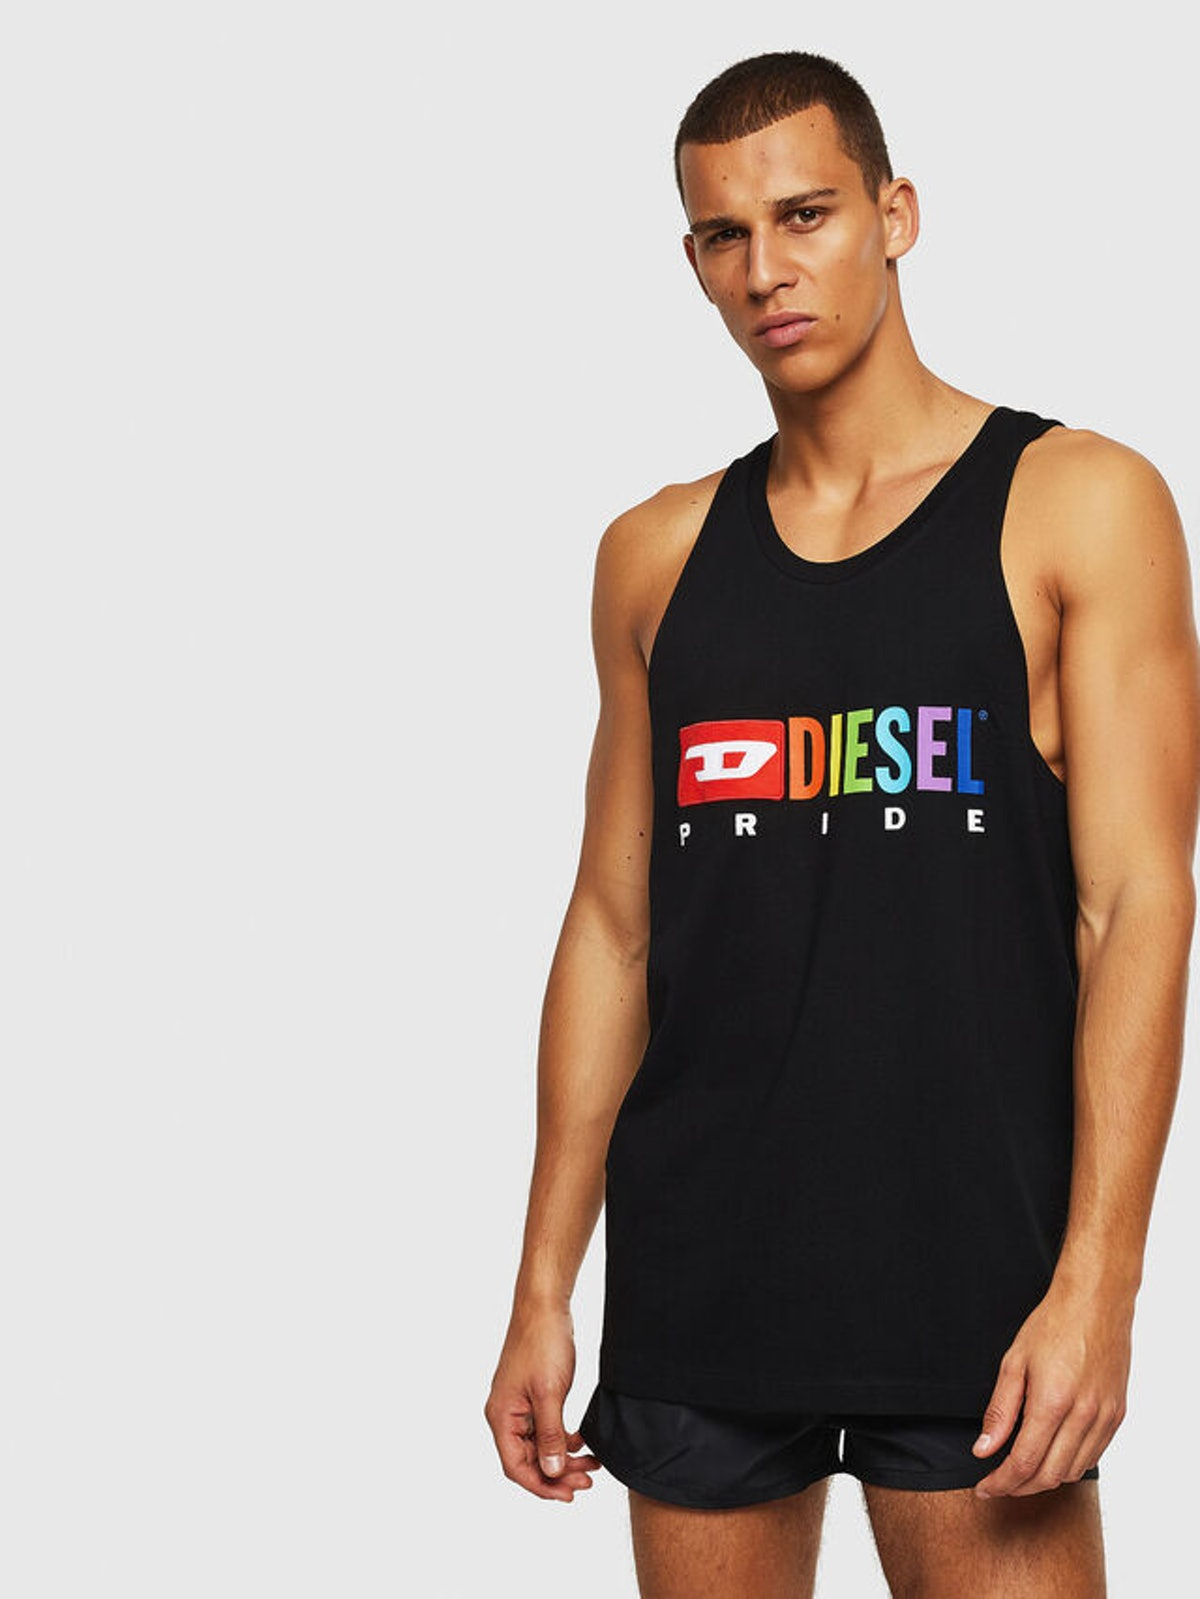 Cotton tank top with Pride logo